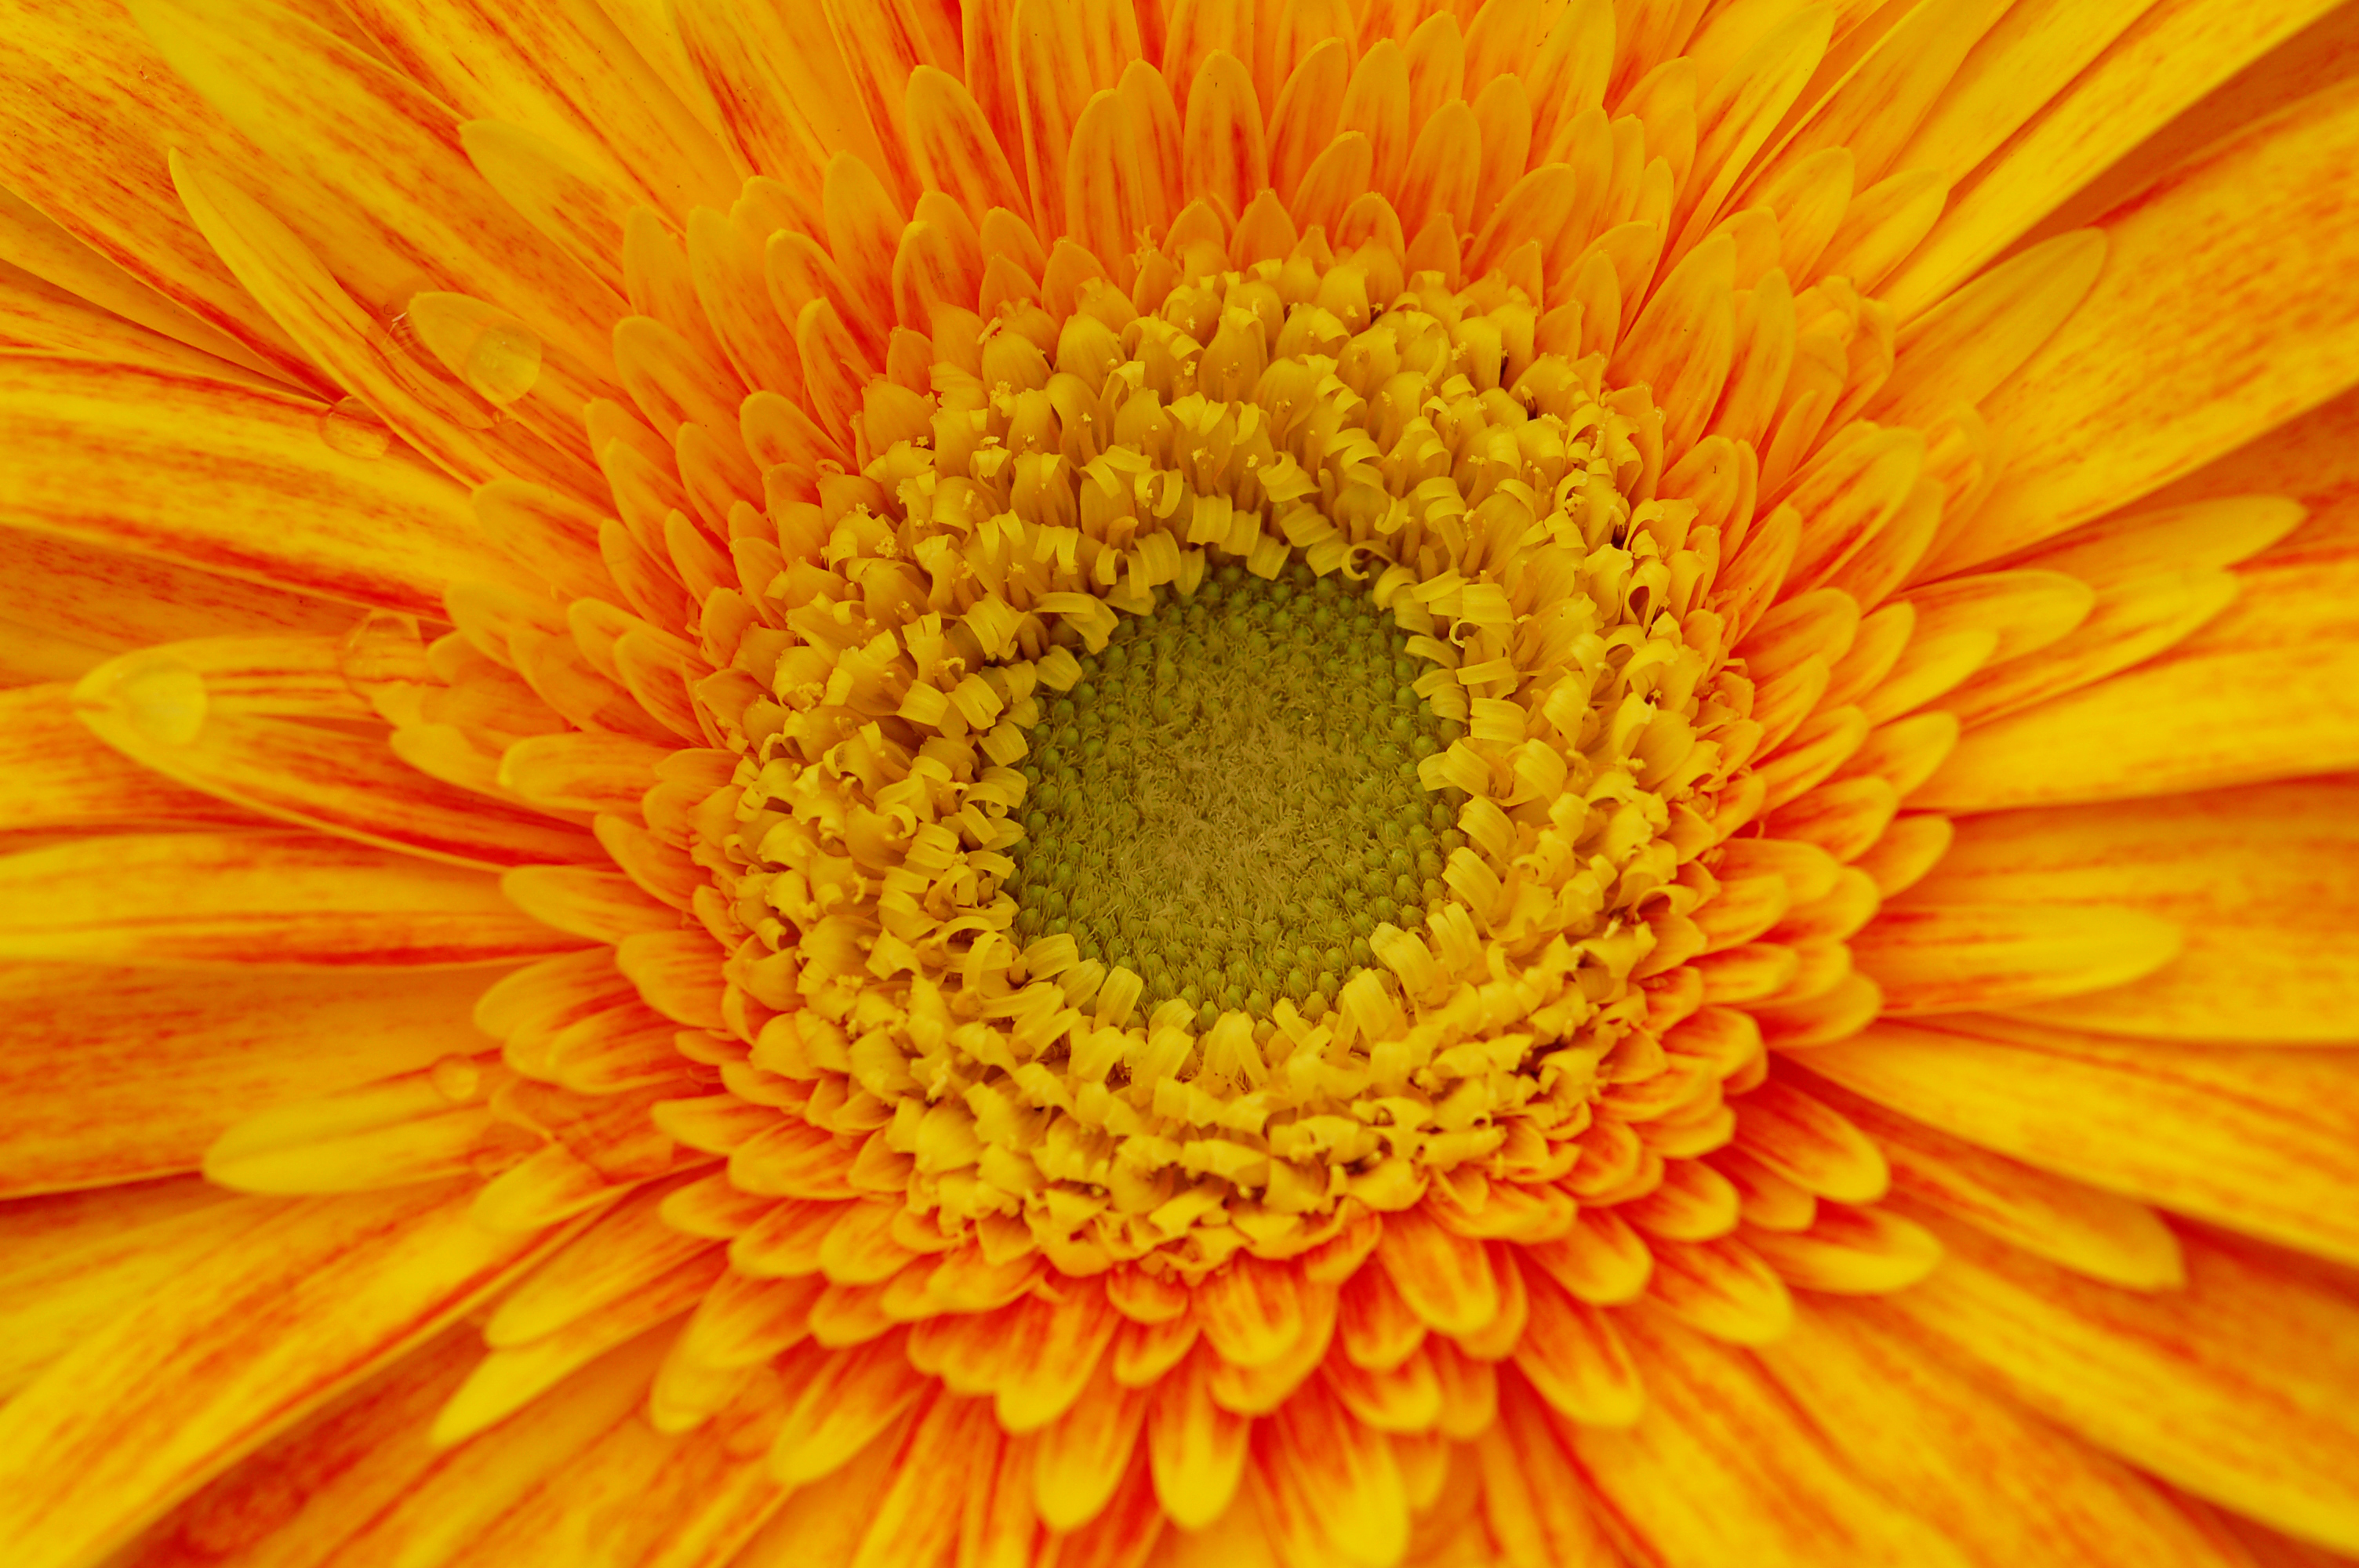 Yellow and orange gerbera daisy flower design bundles yellow and orange gerbera daisy flower nature background example image 5 izmirmasajfo